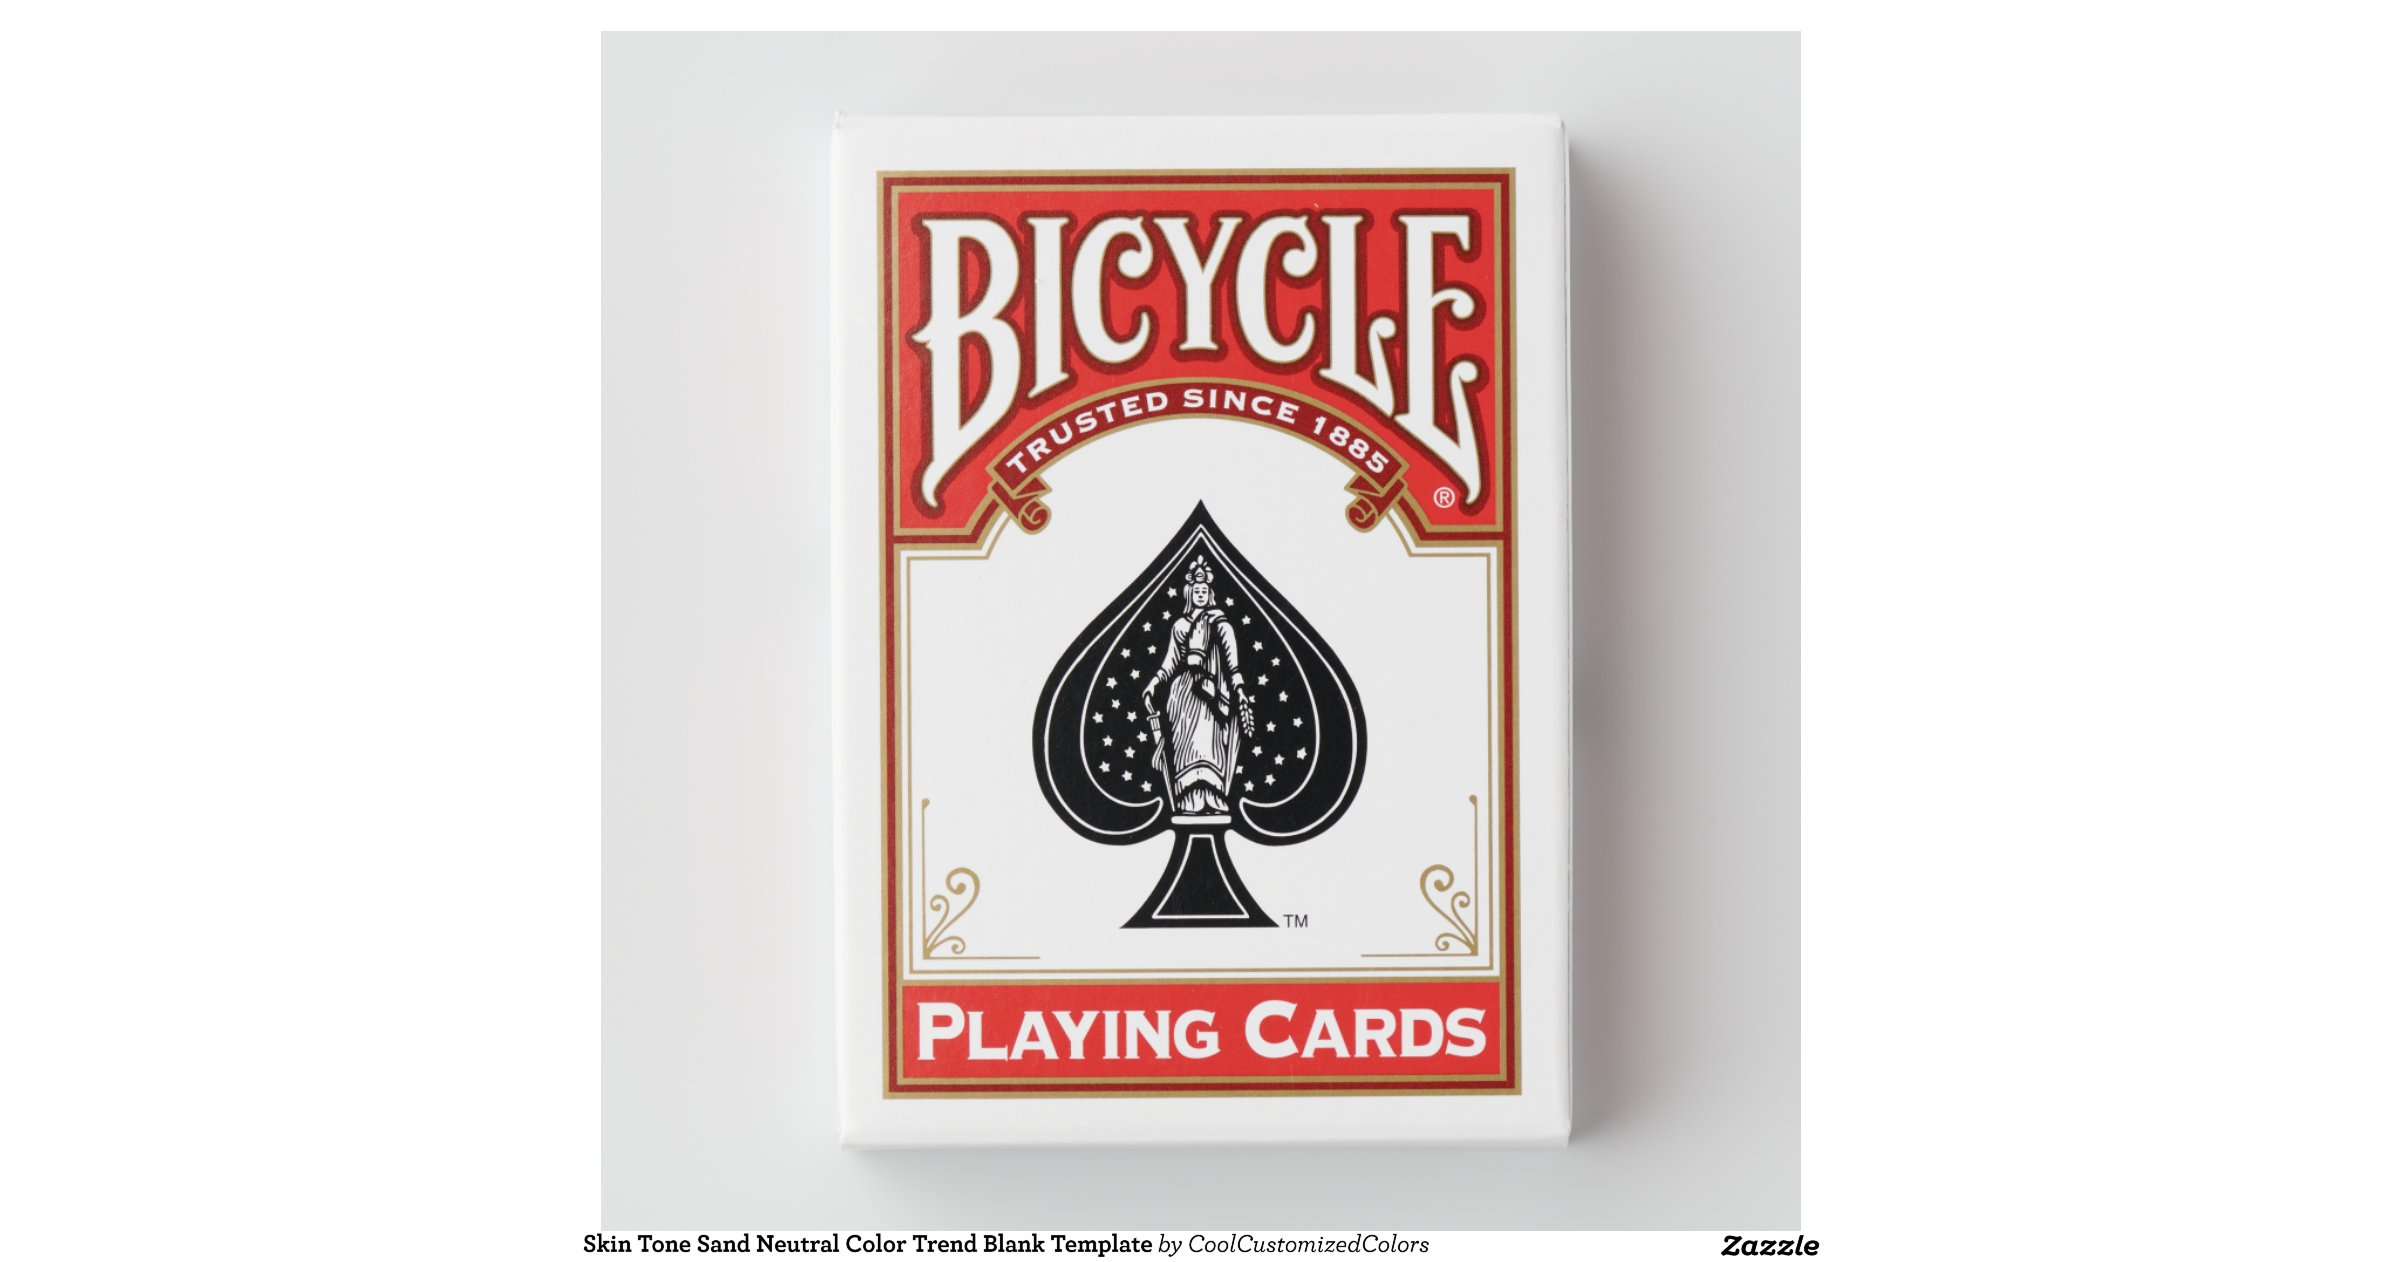 skin tone sand neutral colour trend blank template bicycle poker deck zazzle. Black Bedroom Furniture Sets. Home Design Ideas